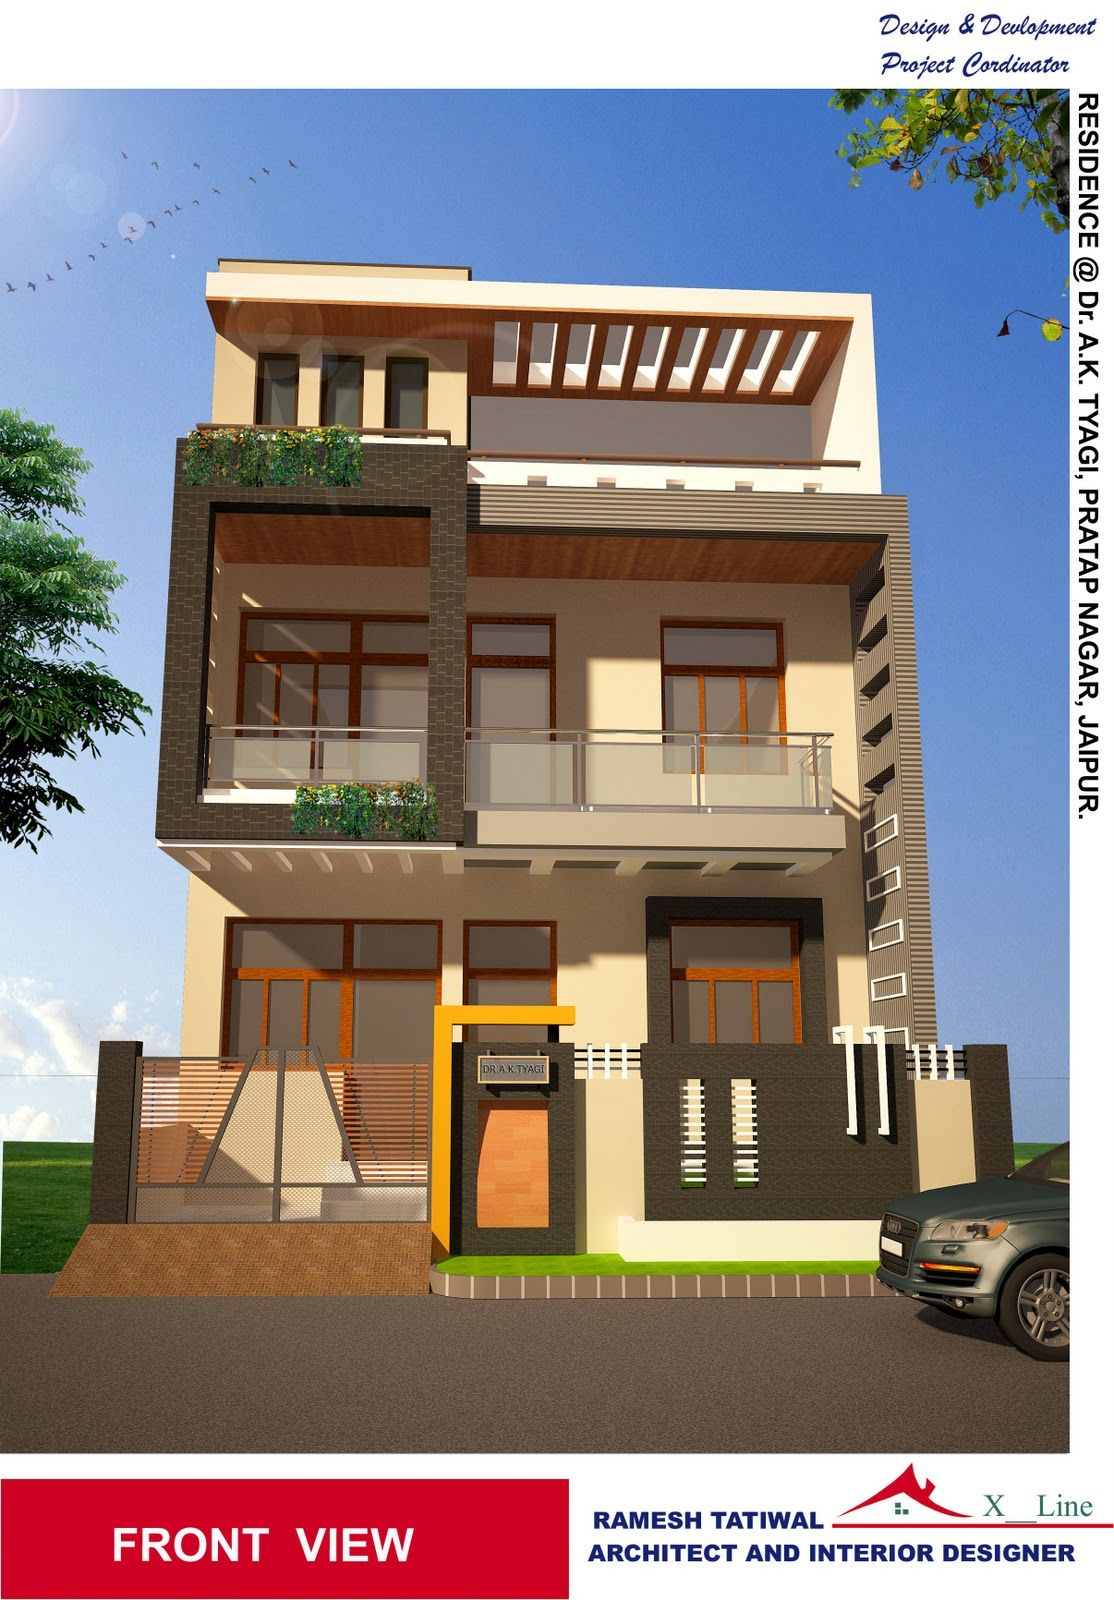 Housedesigns modern indian home architecture design from for Indian home front design